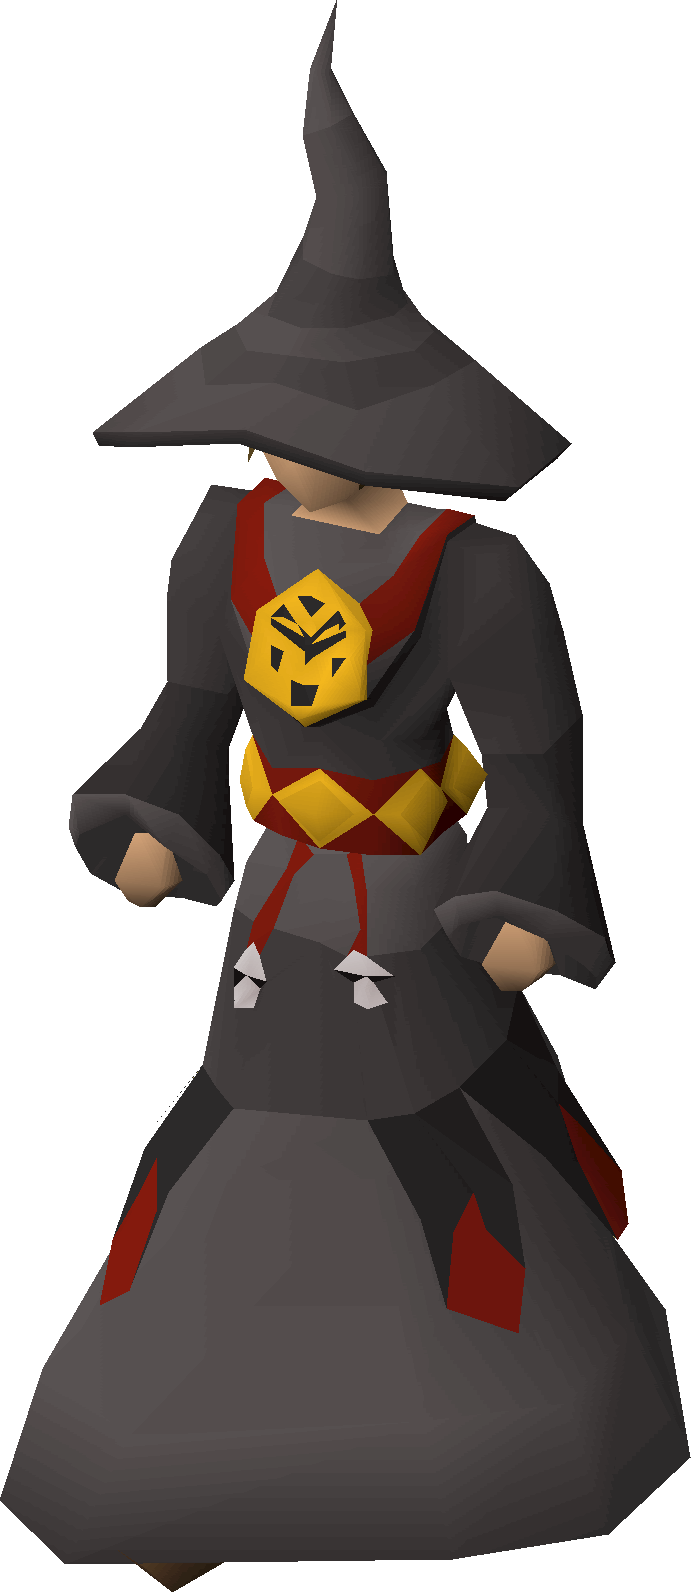 dagon hai robes osrs wiki dagon hai robes osrs wiki